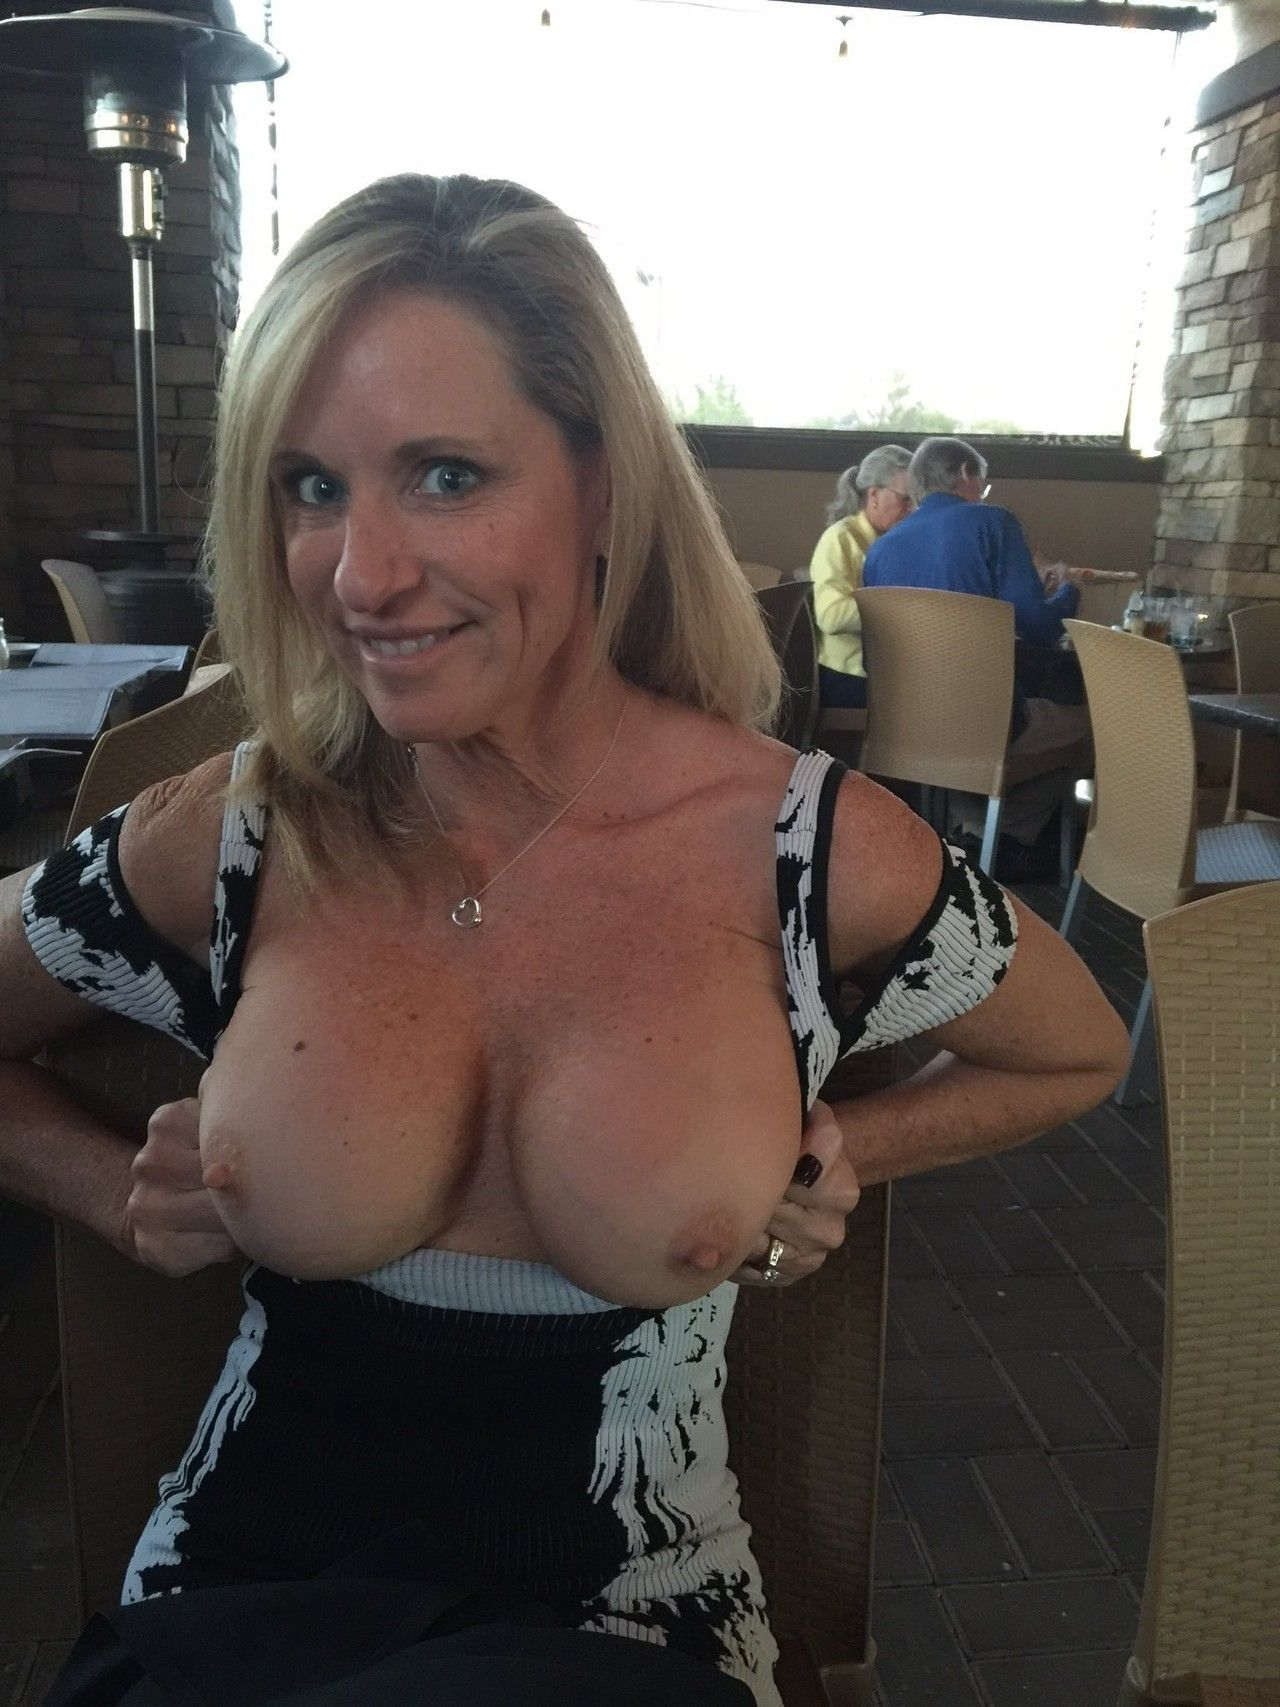 Teen with puffy nipples